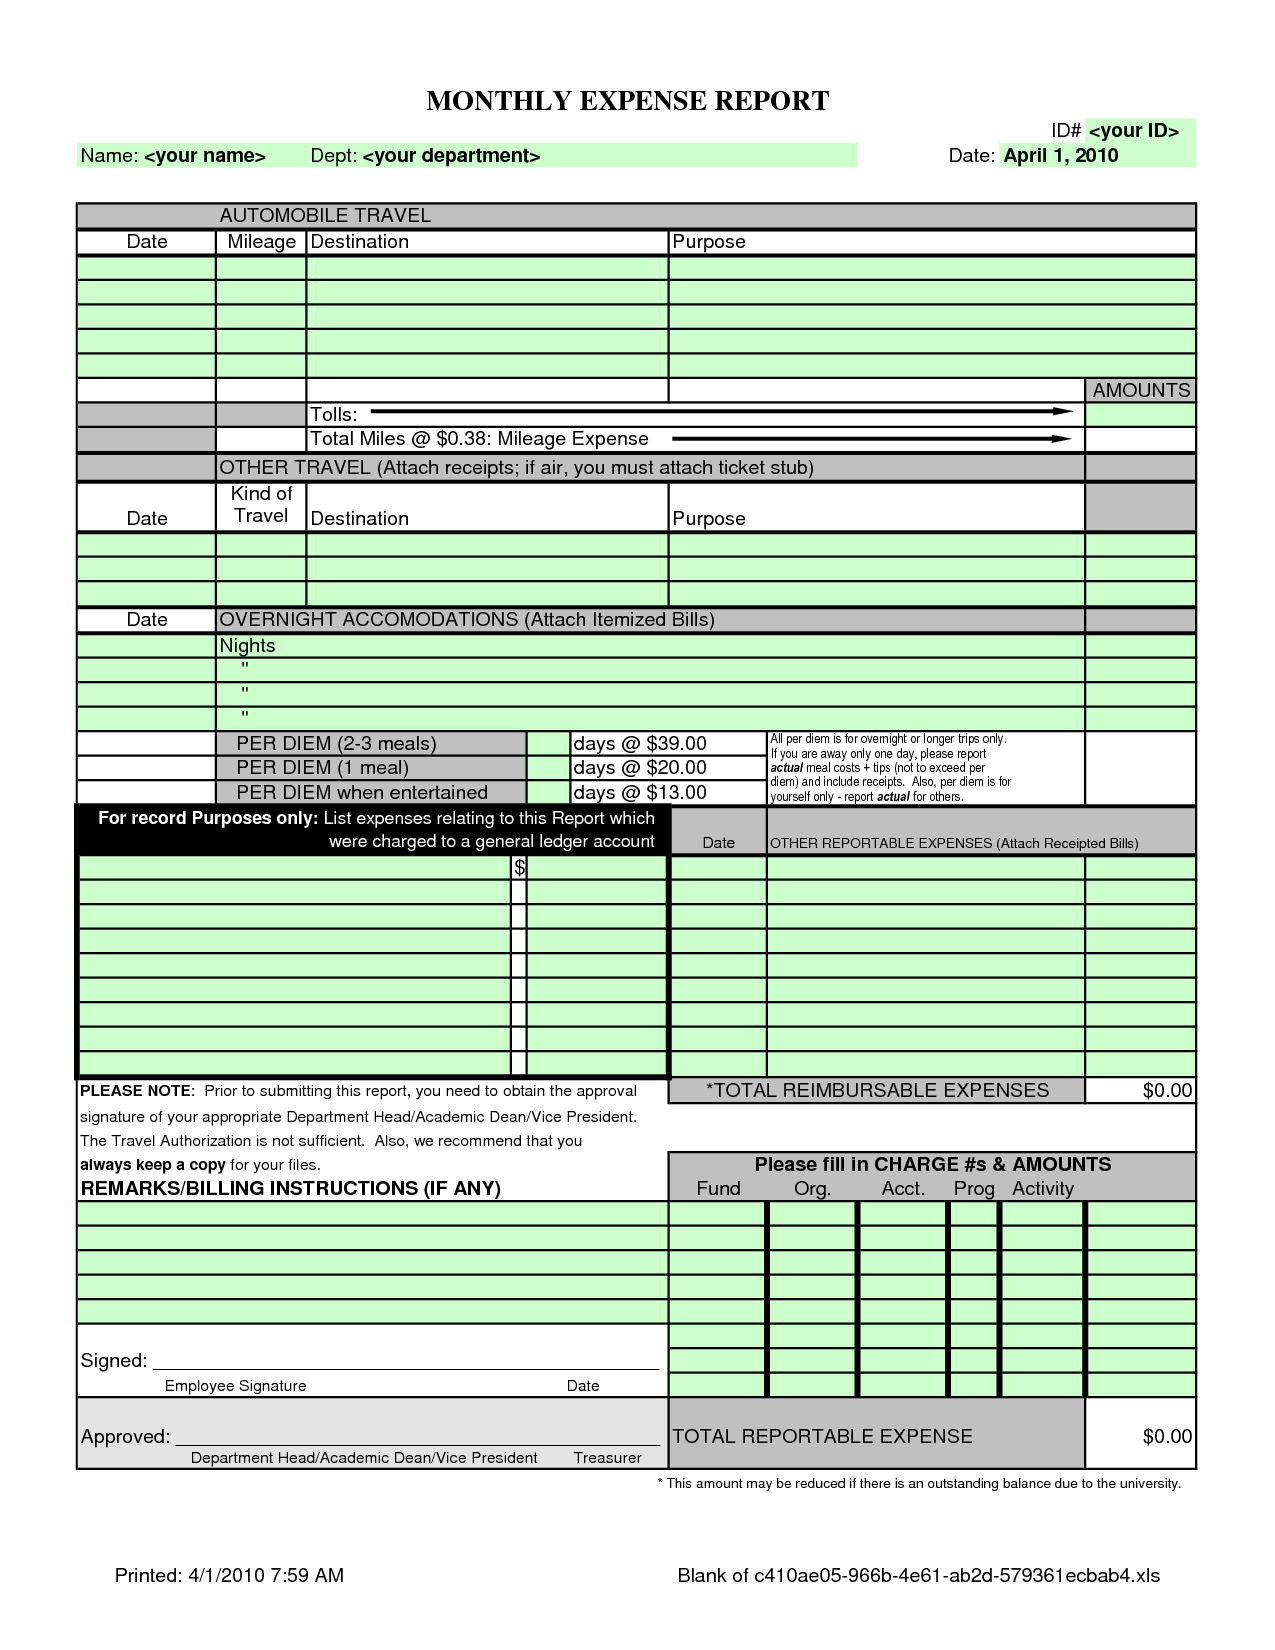 Expense Report Template Xls Best Template Ideas Spreadsheet Template Monthly Expenses Excel Spreadsheets Templates